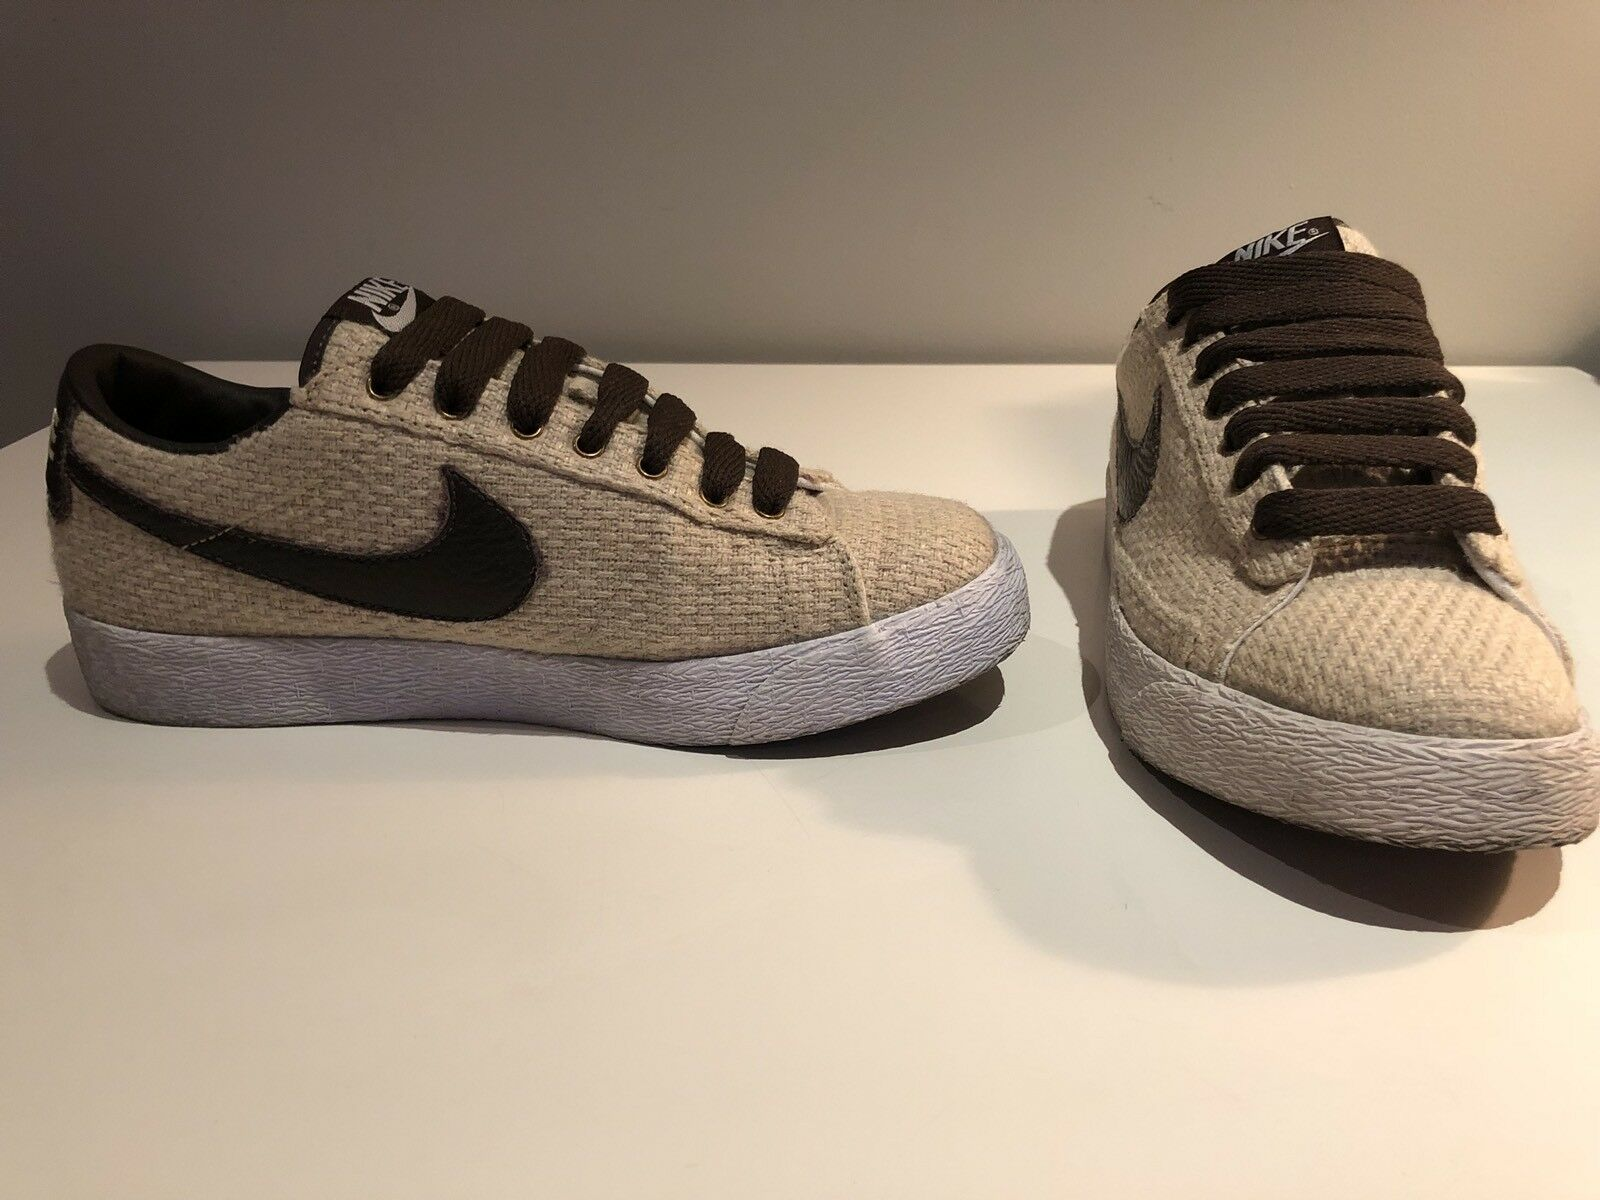 Nike Blazer Low Basic Brown and Cream Hemp Sneakers | Men's or Boy's Comfortable New shoes for men and women, limited time discount